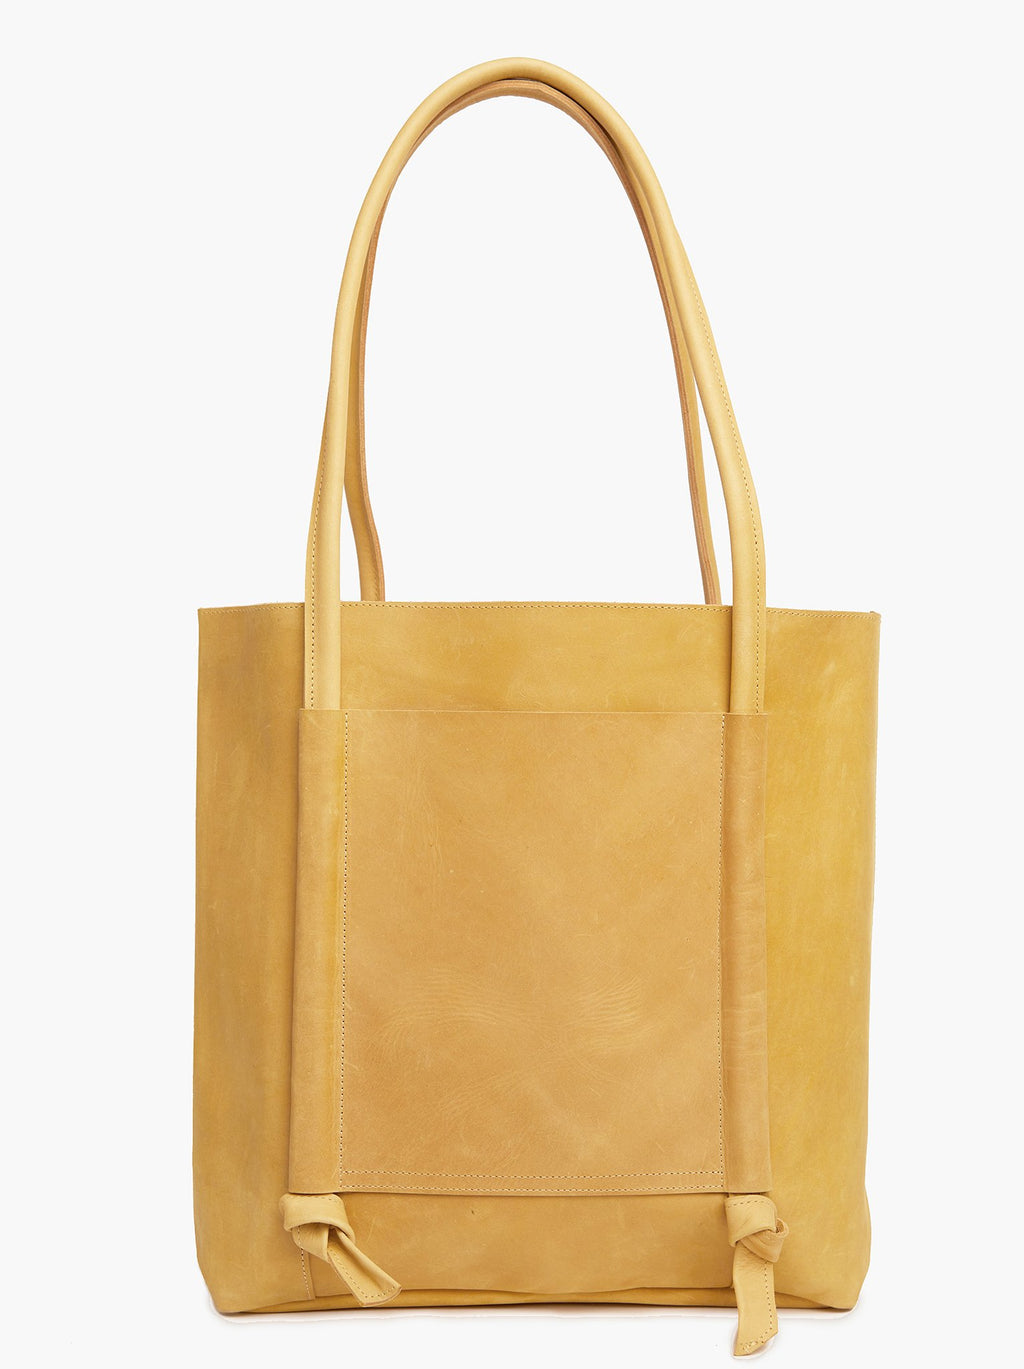 ABLE LOMI TOTE - Penny Lane Boutique